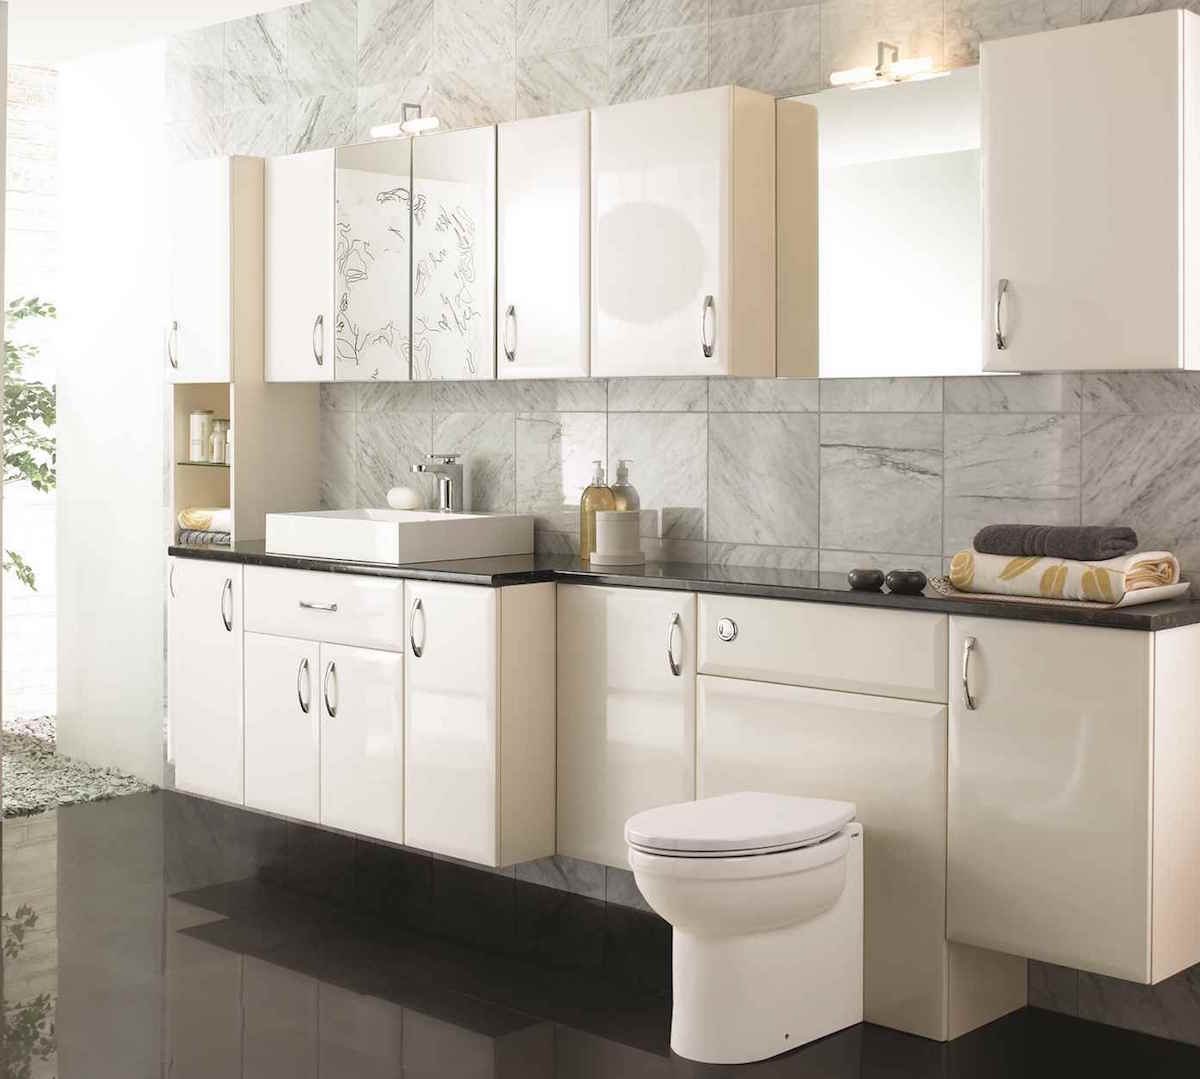 Bathroom showrooms shrewsbury - Fitted Bathroom Furniture Shops In Shrewsbury And Telford